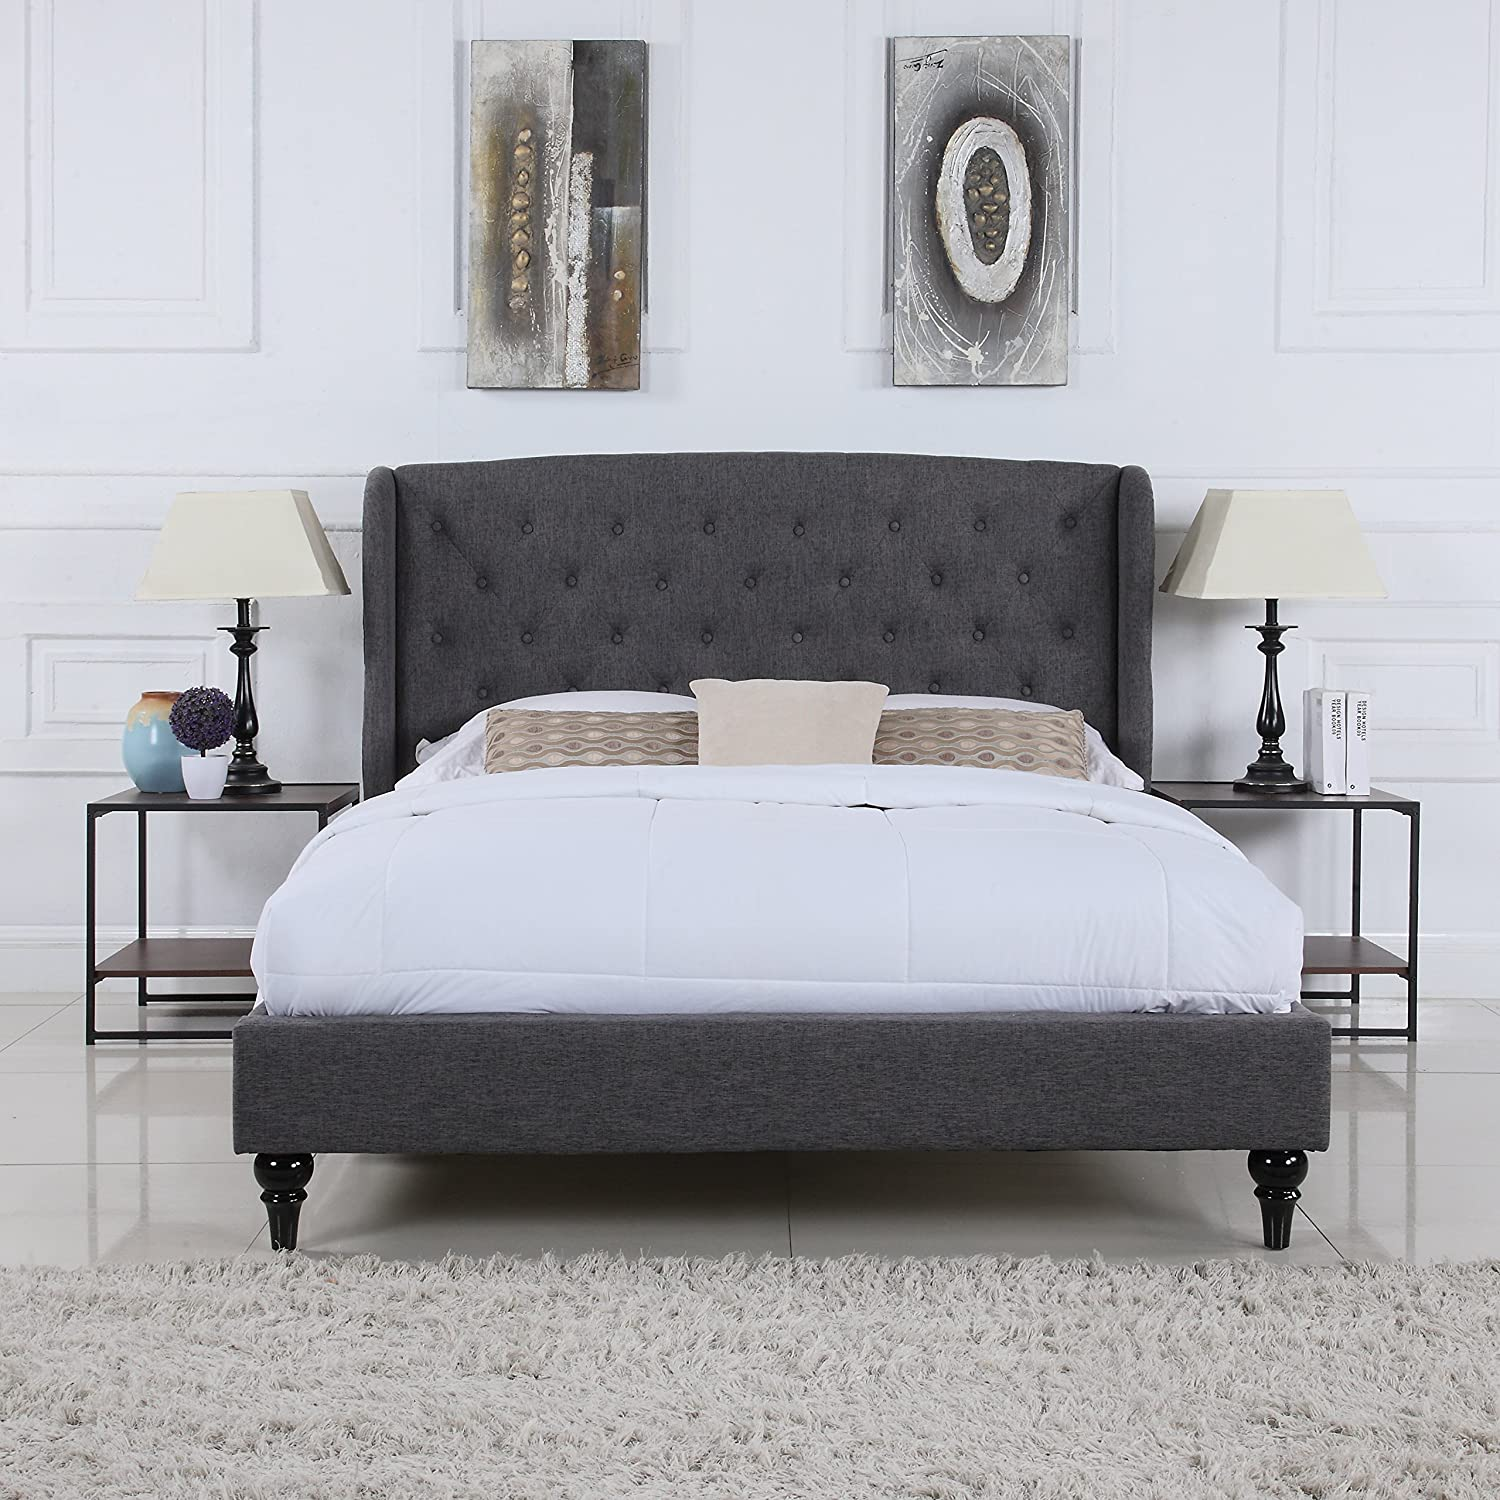 Amazoncom Classic Dark Grey BoxTufted Shelter Bed Frame Queen